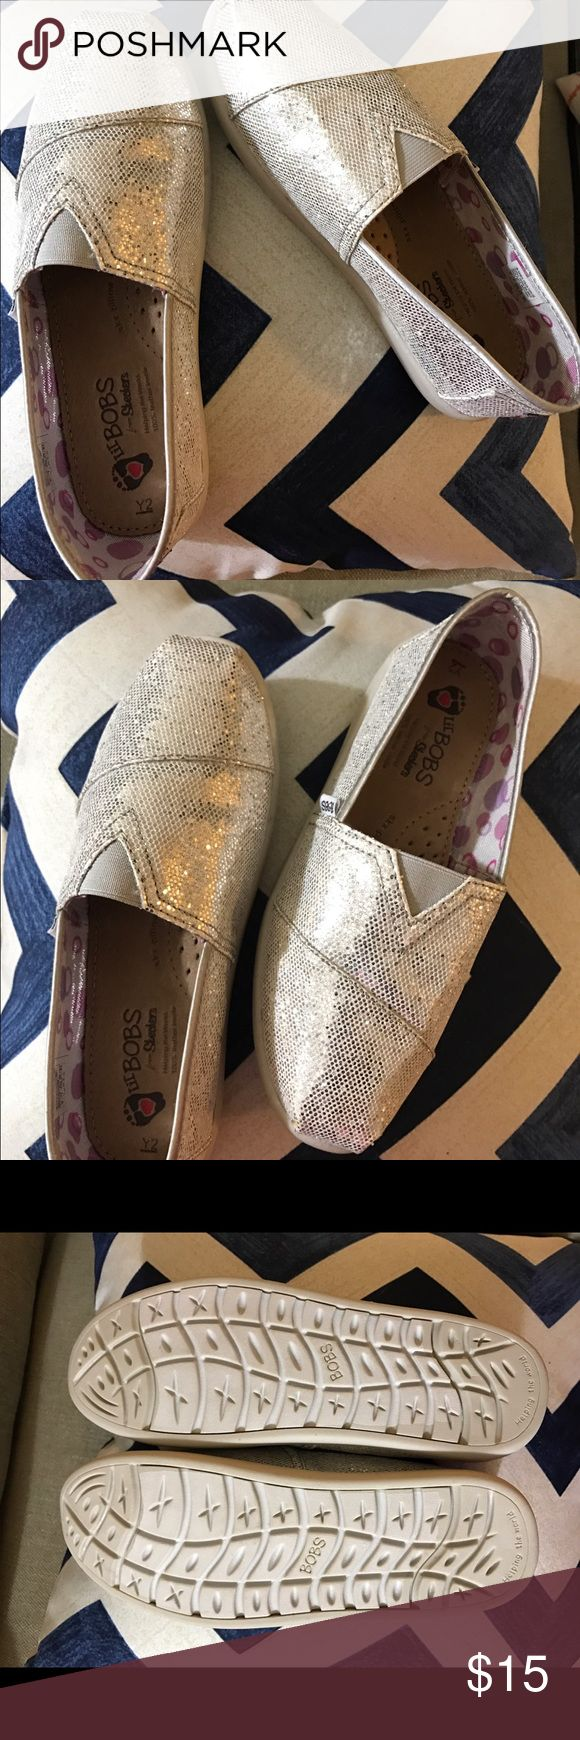 Very nice SKECHERS KIDS Bobs Kid  Glitter Textile Very Nice Skechers Lil Bons . Add some sparkle and shine to every outfit with these sweetly stylish shoes. Glittery fabric upper. Slip-on design for easy on and off. Skechers Shoes Flats & Loafers